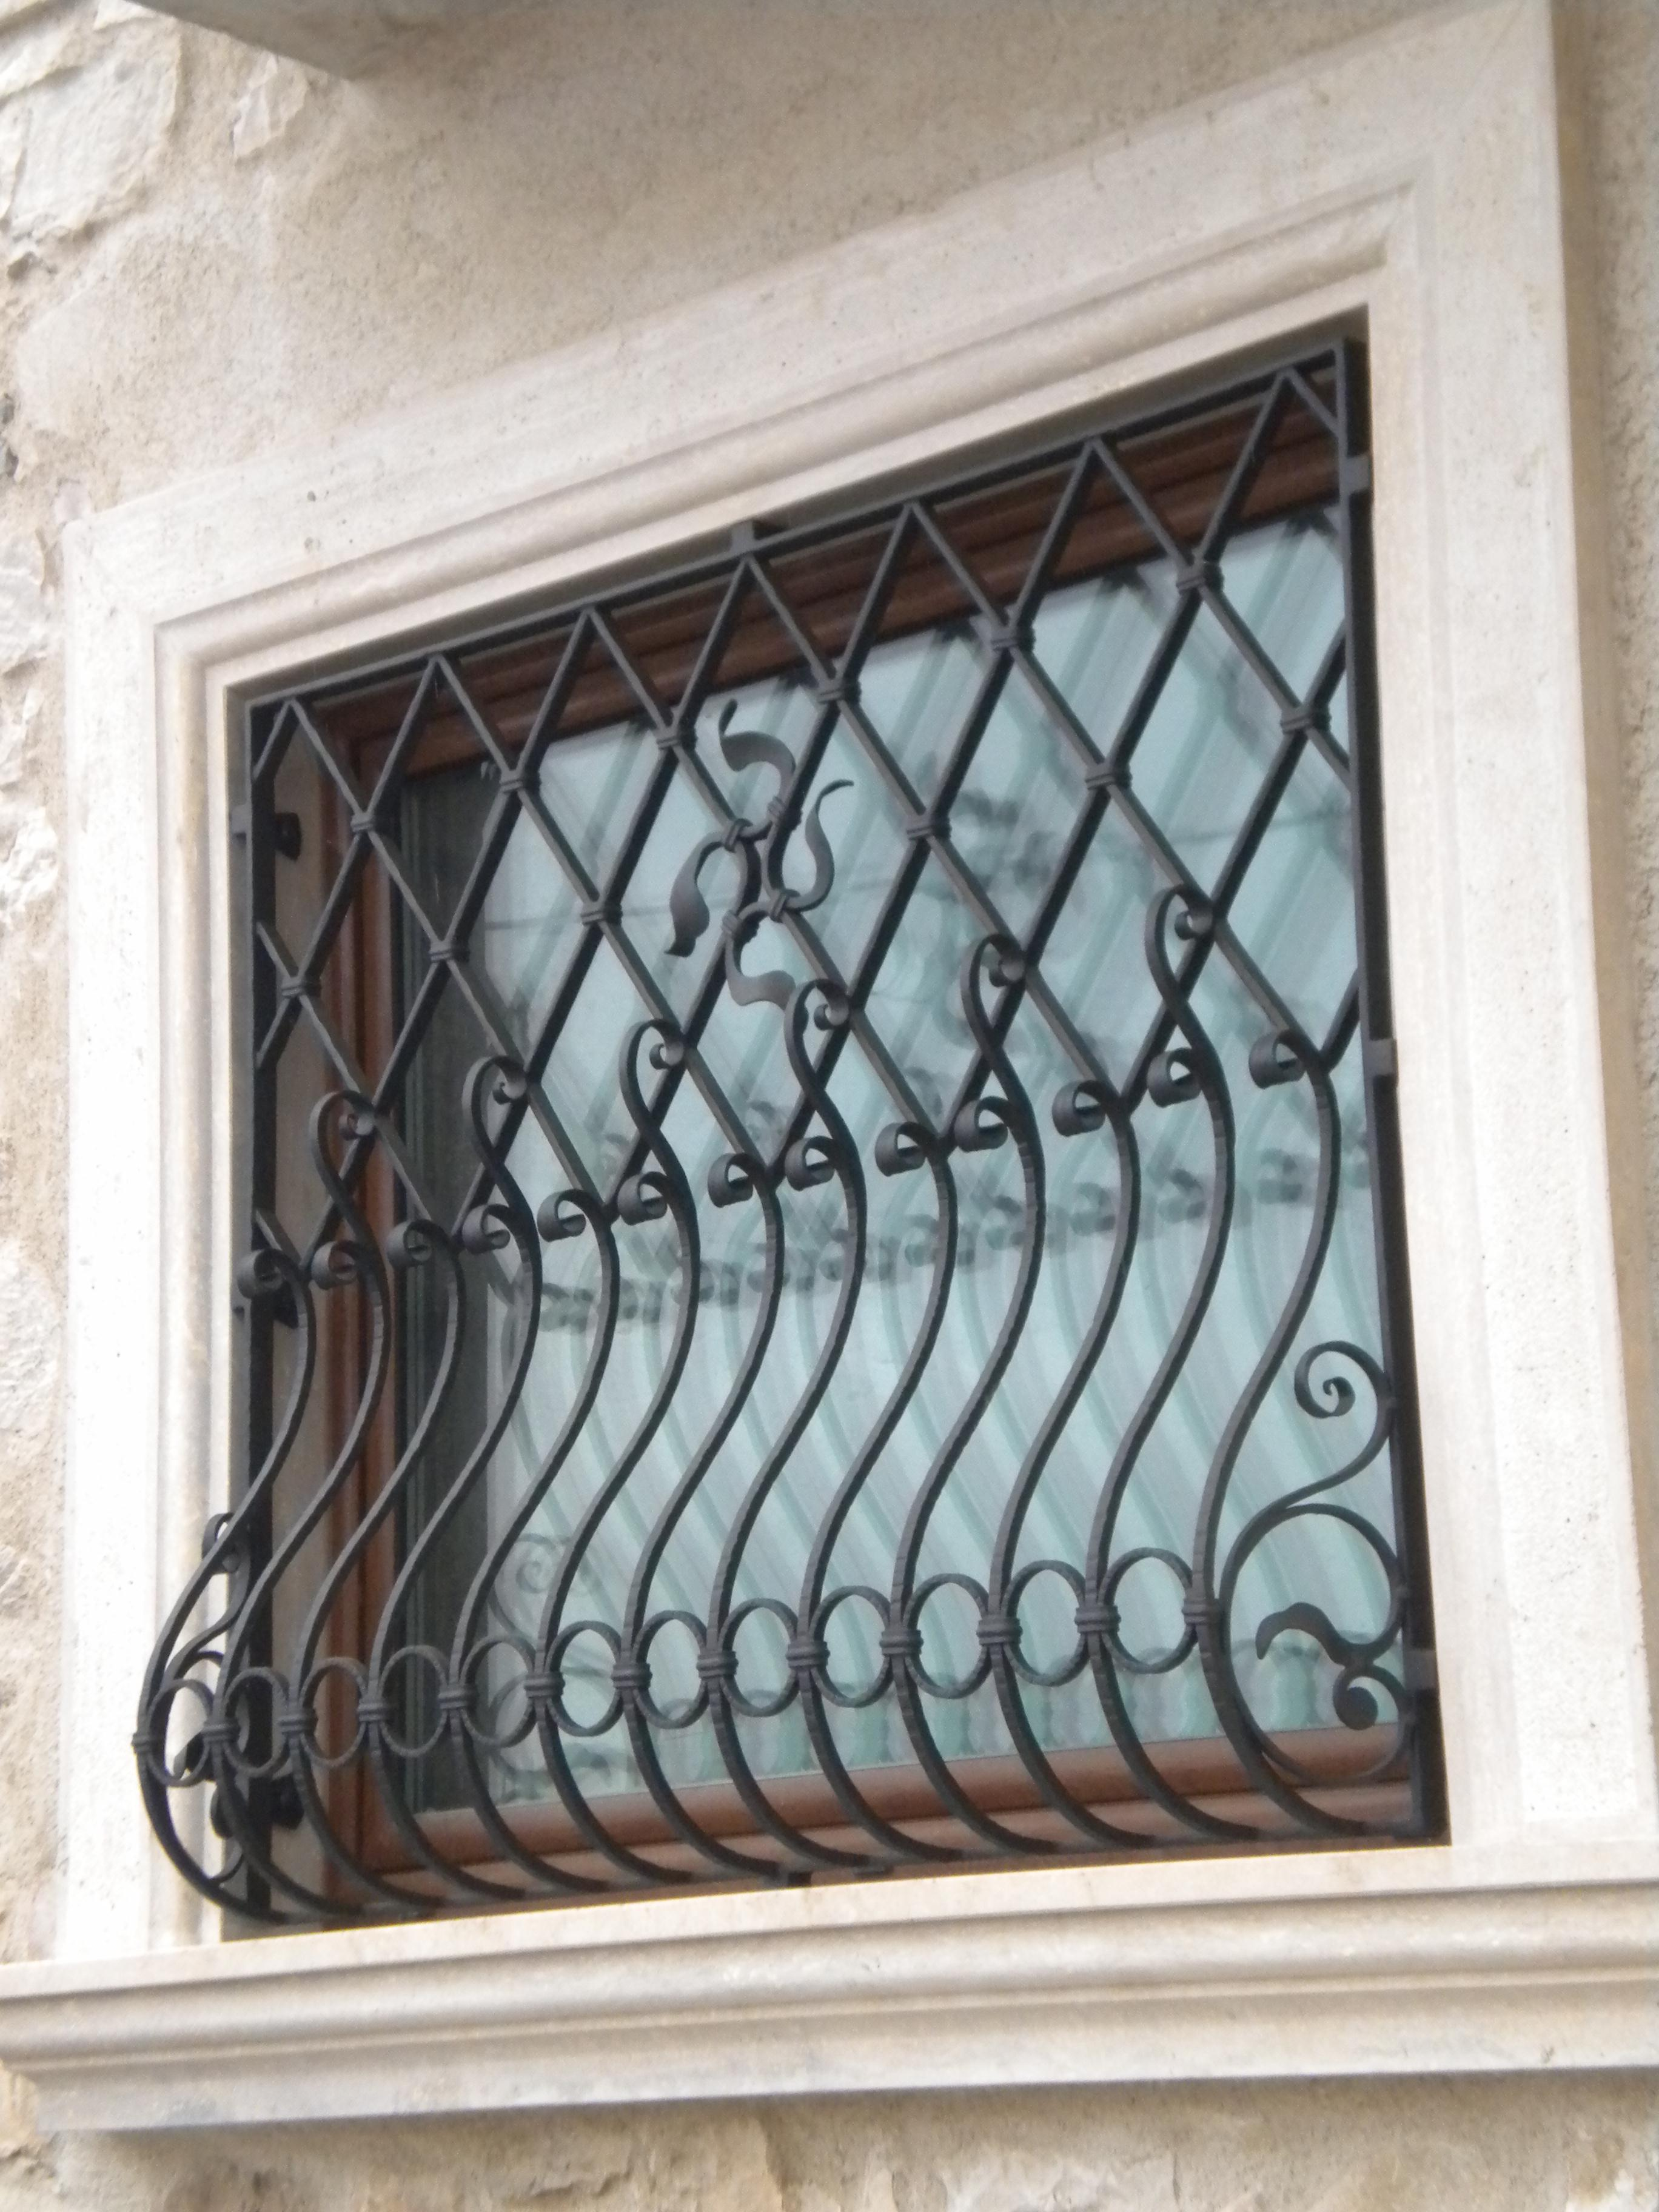 Wrought iron grilles and protections gates grille for for Grille de protection pour fenetre